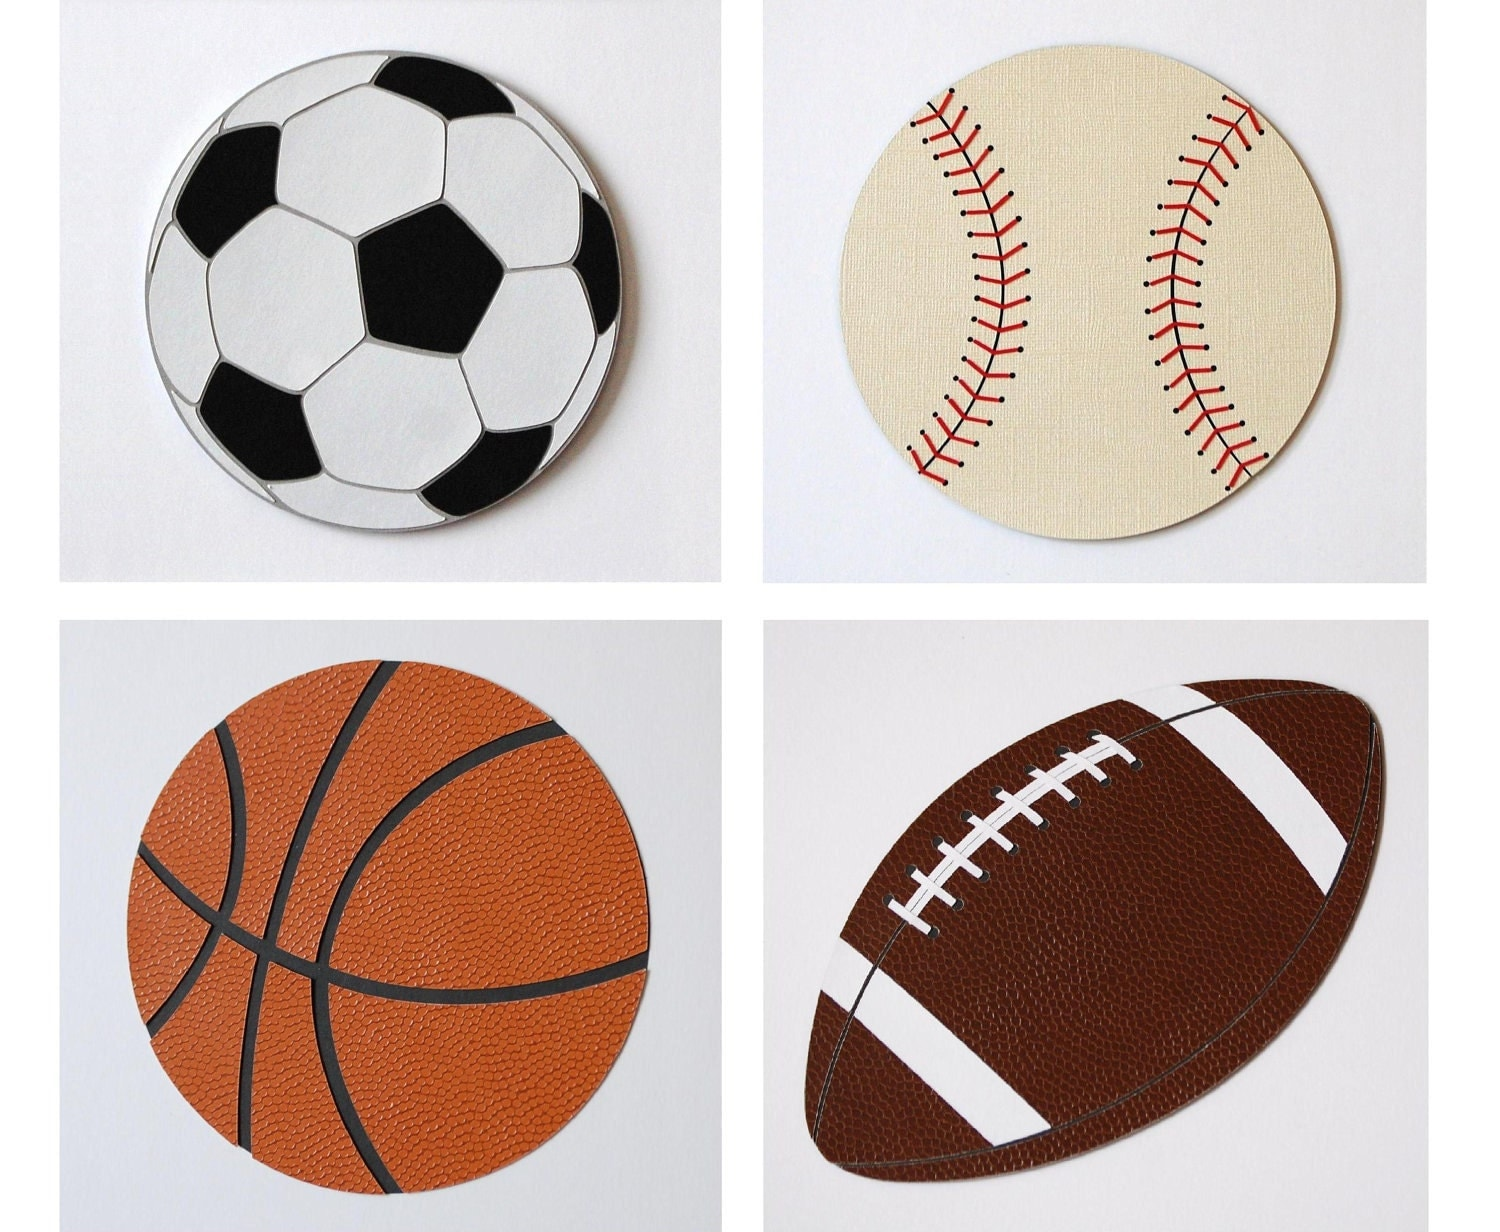 Wall decor for boys room old world home furnishings 2015 sports theme kids wall decor baseball decor football by wallduds amipublicfo Images